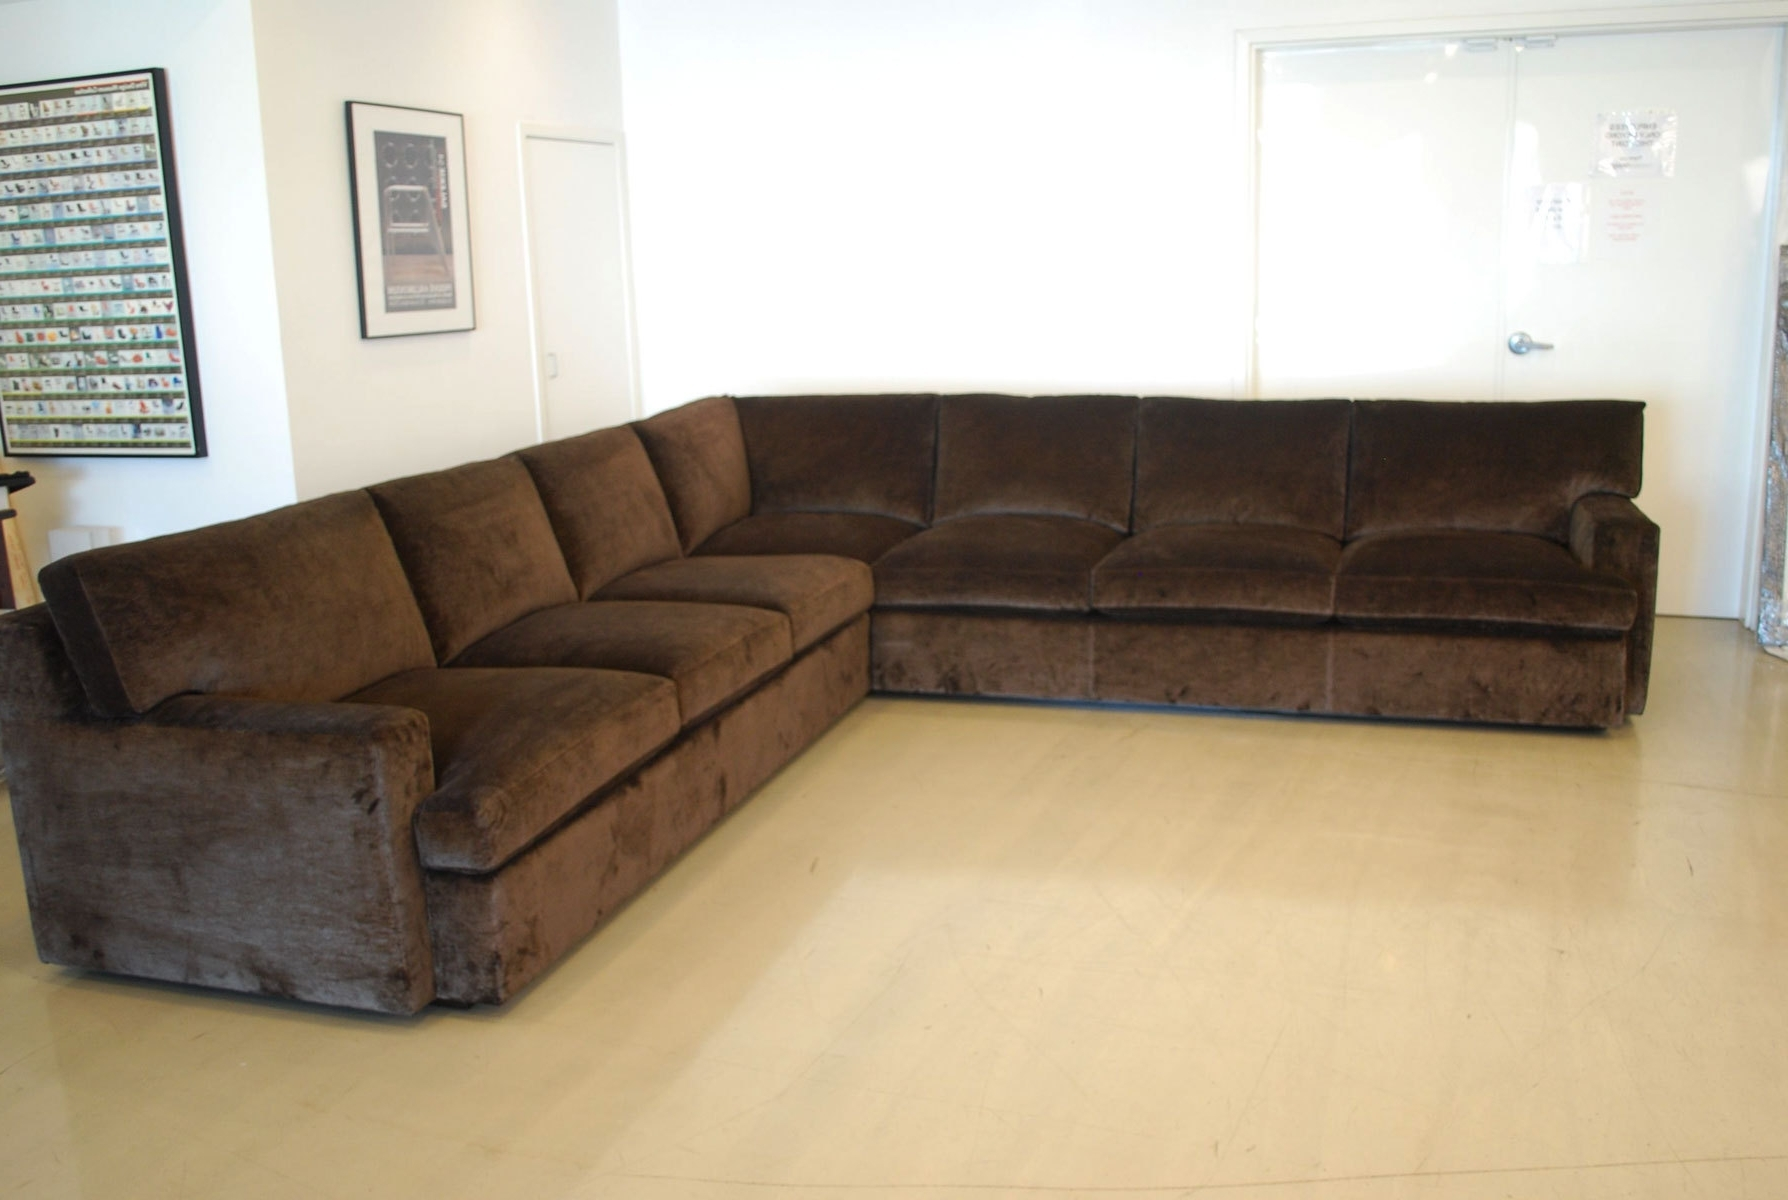 Trend Large L Shaped Sectional Sofas 79 In Two Piece Sectional Throughout Well Known L Shaped Sectionals With Chaise (View 14 of 15)